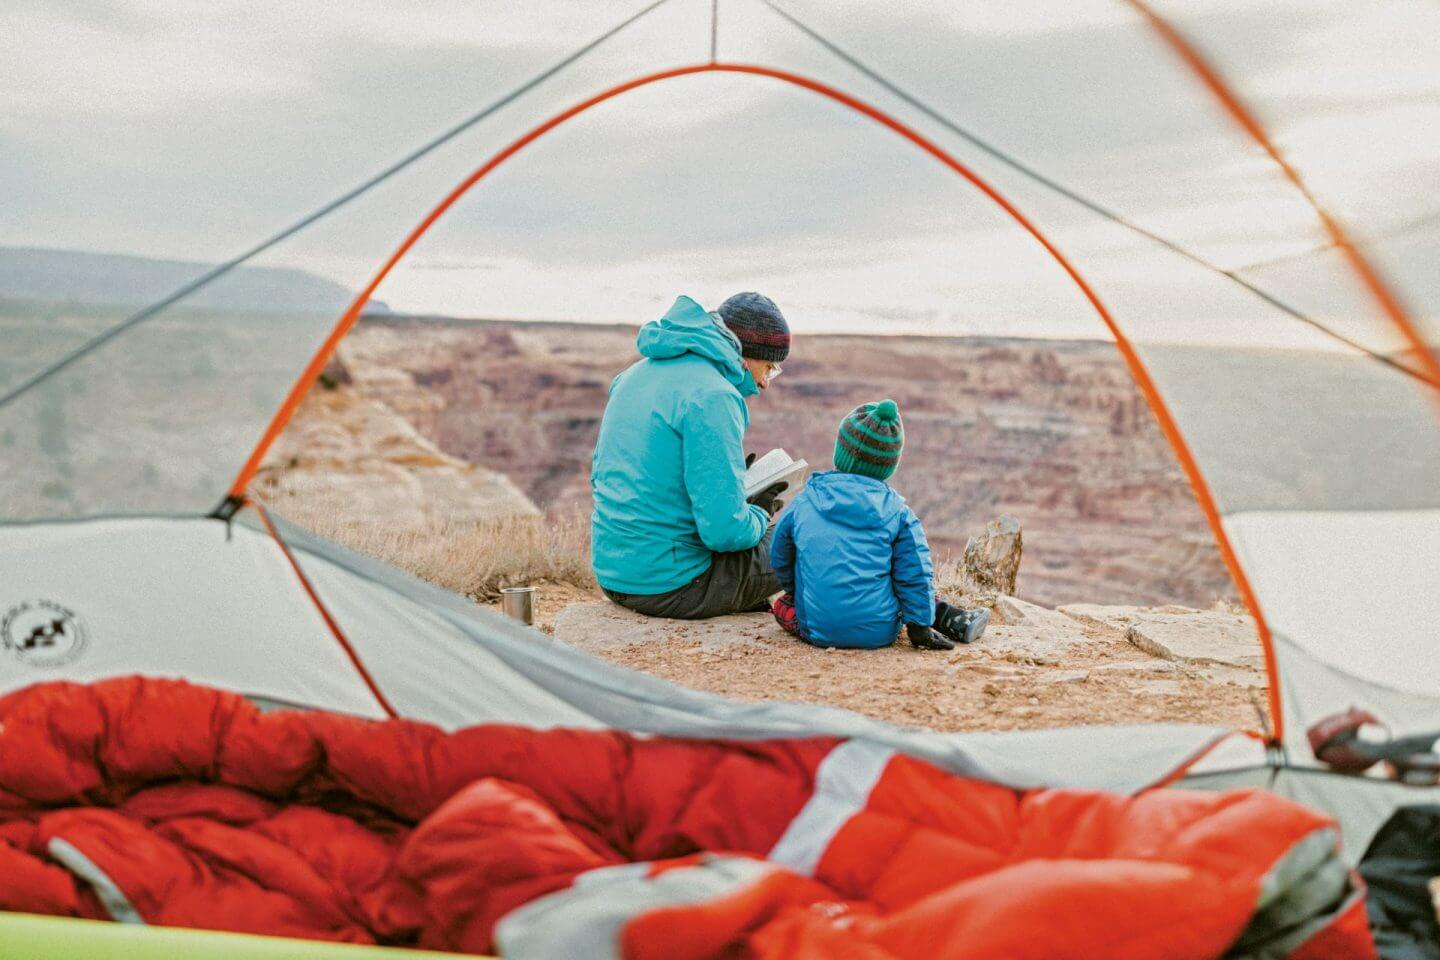 Parent and child camping in The Camping Life book